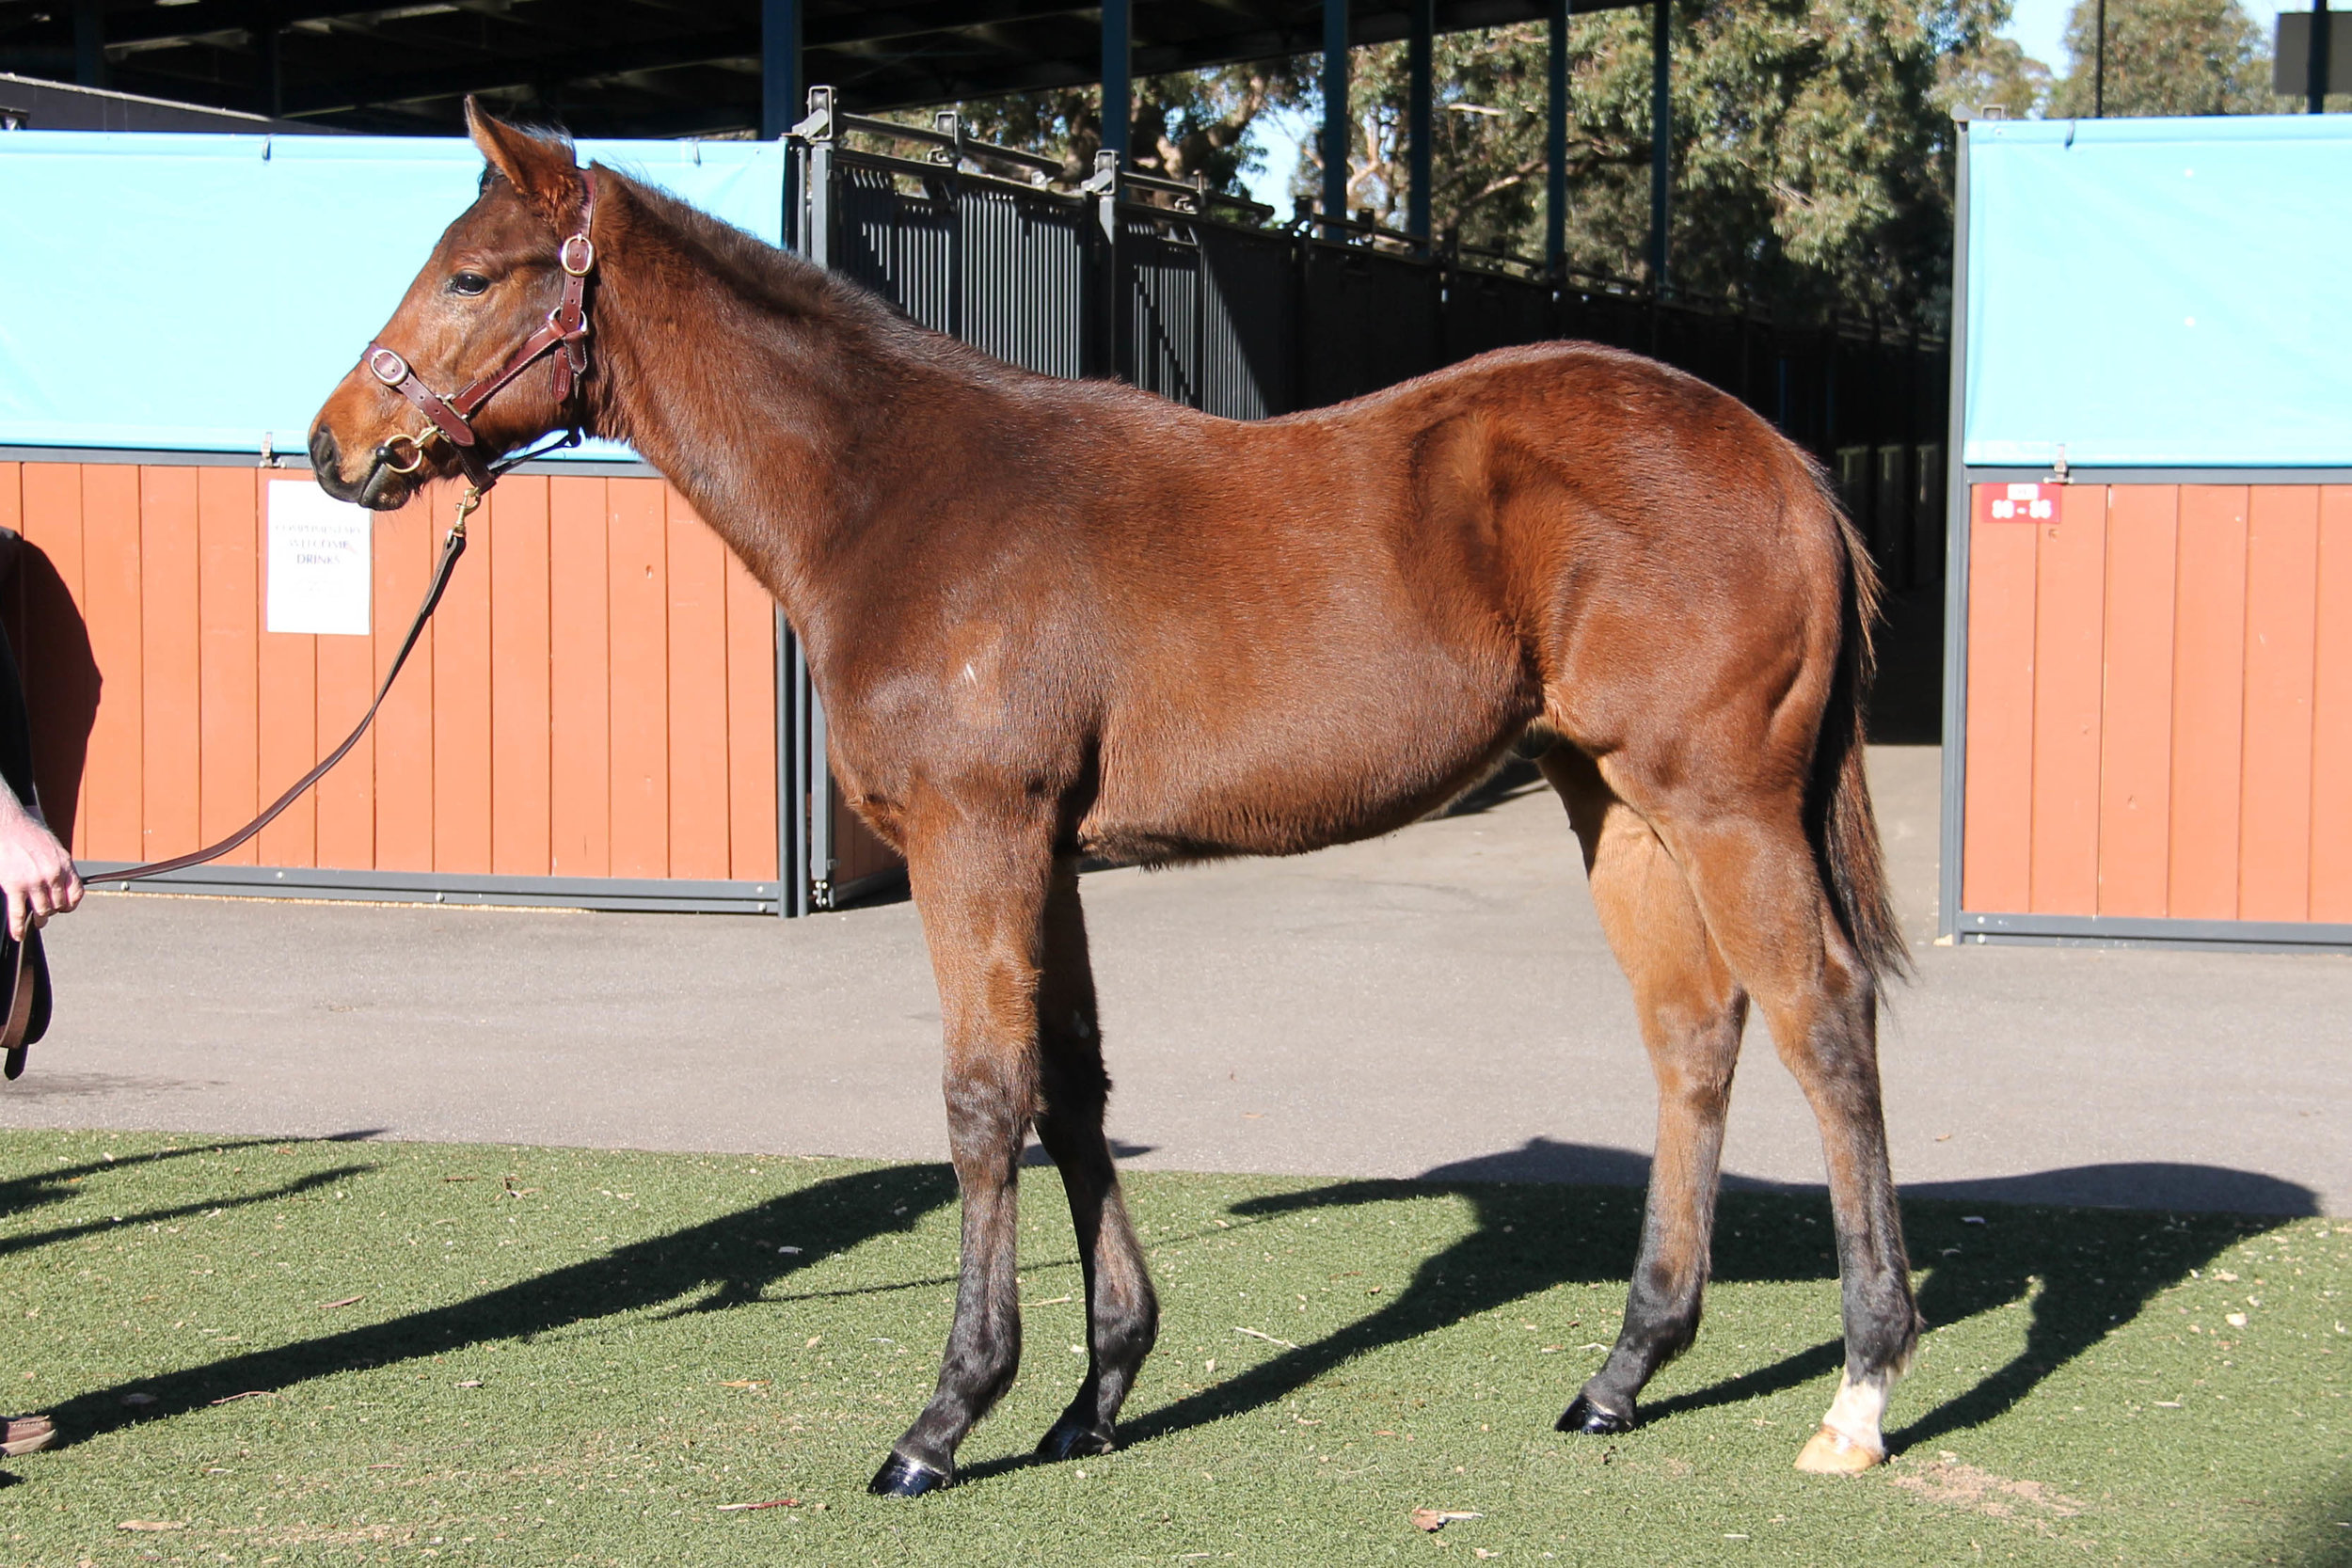 Lot 54 - Magnus x Bopping Blonde 2018 Colt - Sold for $7,500 to Ascot Bloodstock WA